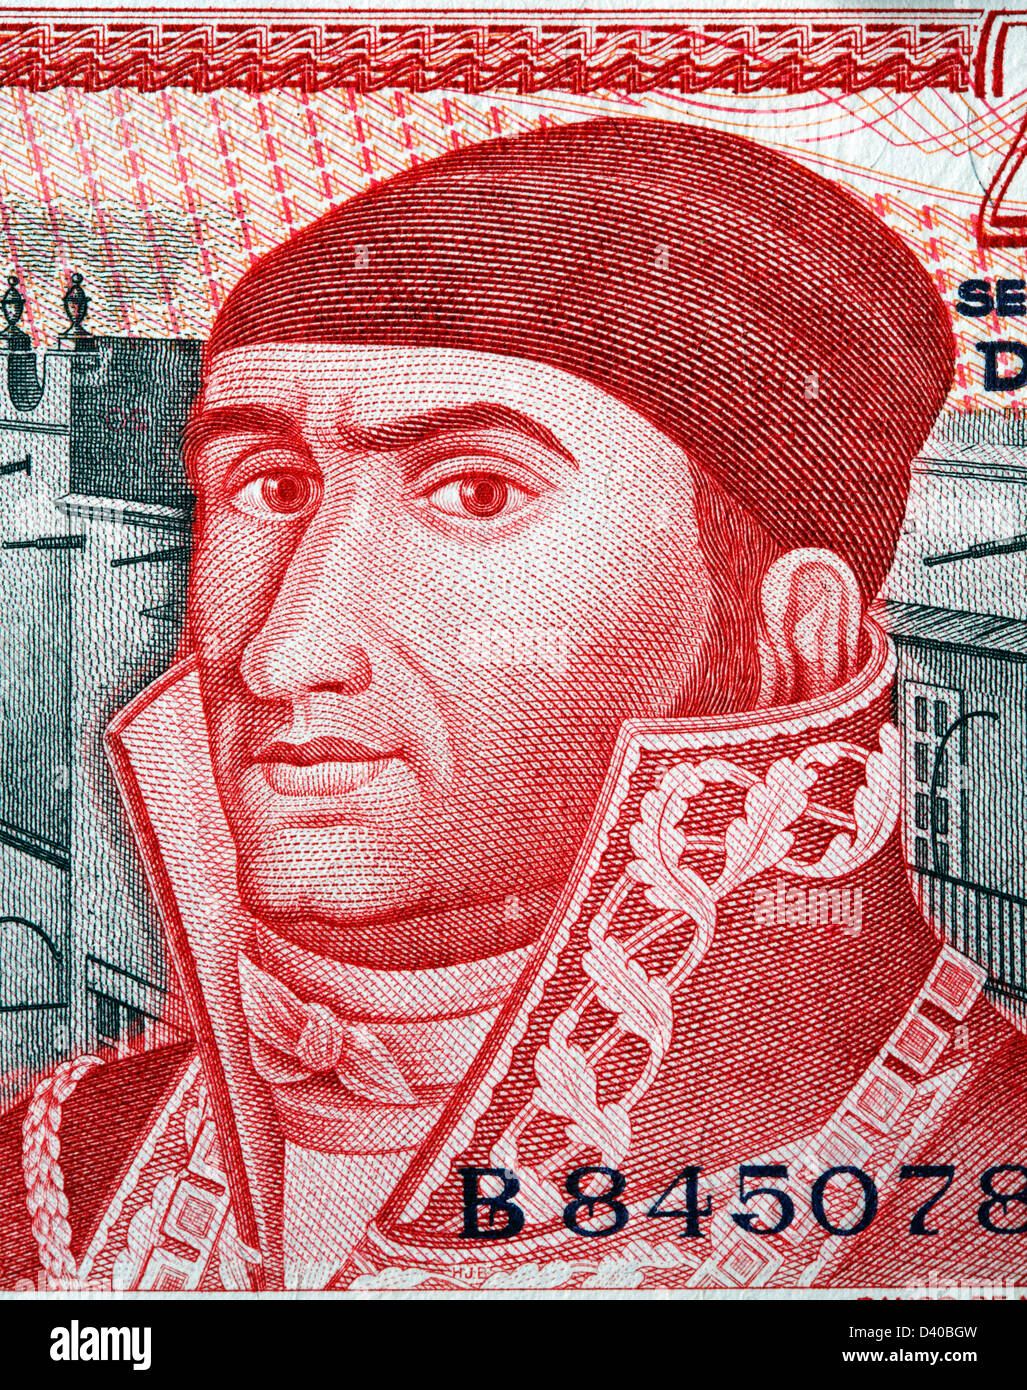 Portrait of Jose Morelos y Pavon from 20 Pesos banknote, Mexico, 1977 Stock Photo